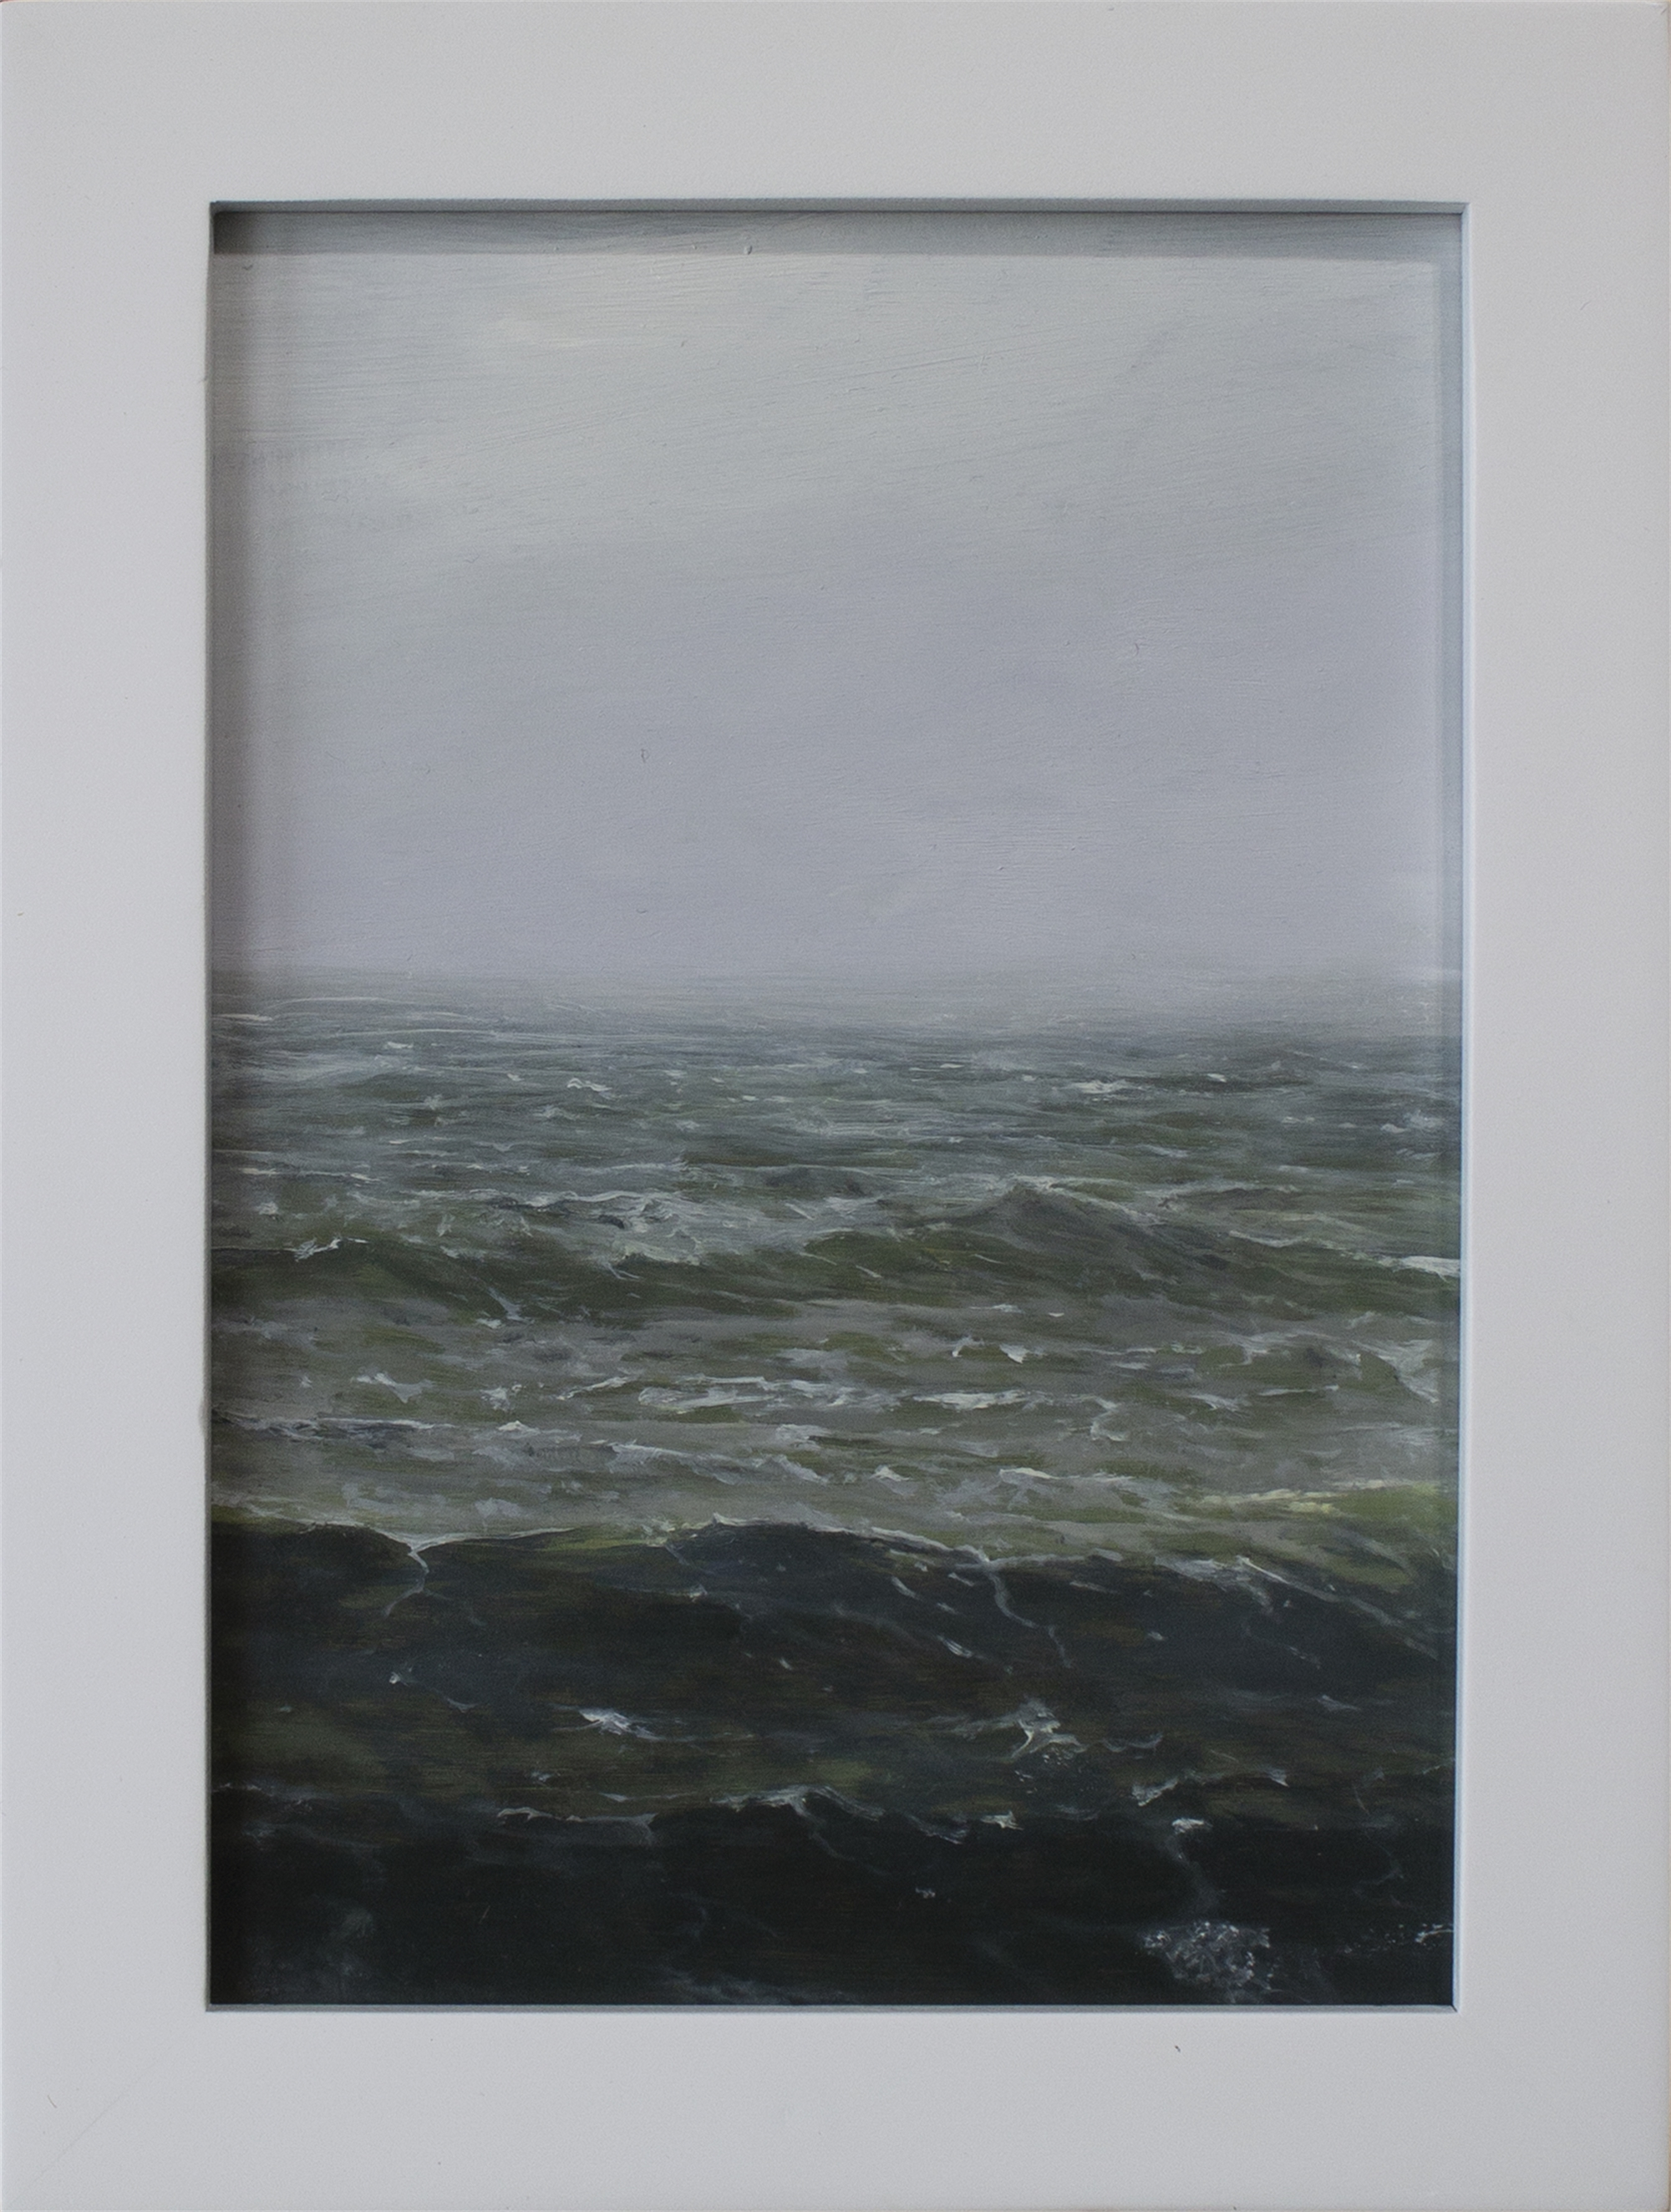 Other Side of Ocean Study by Adam Hall